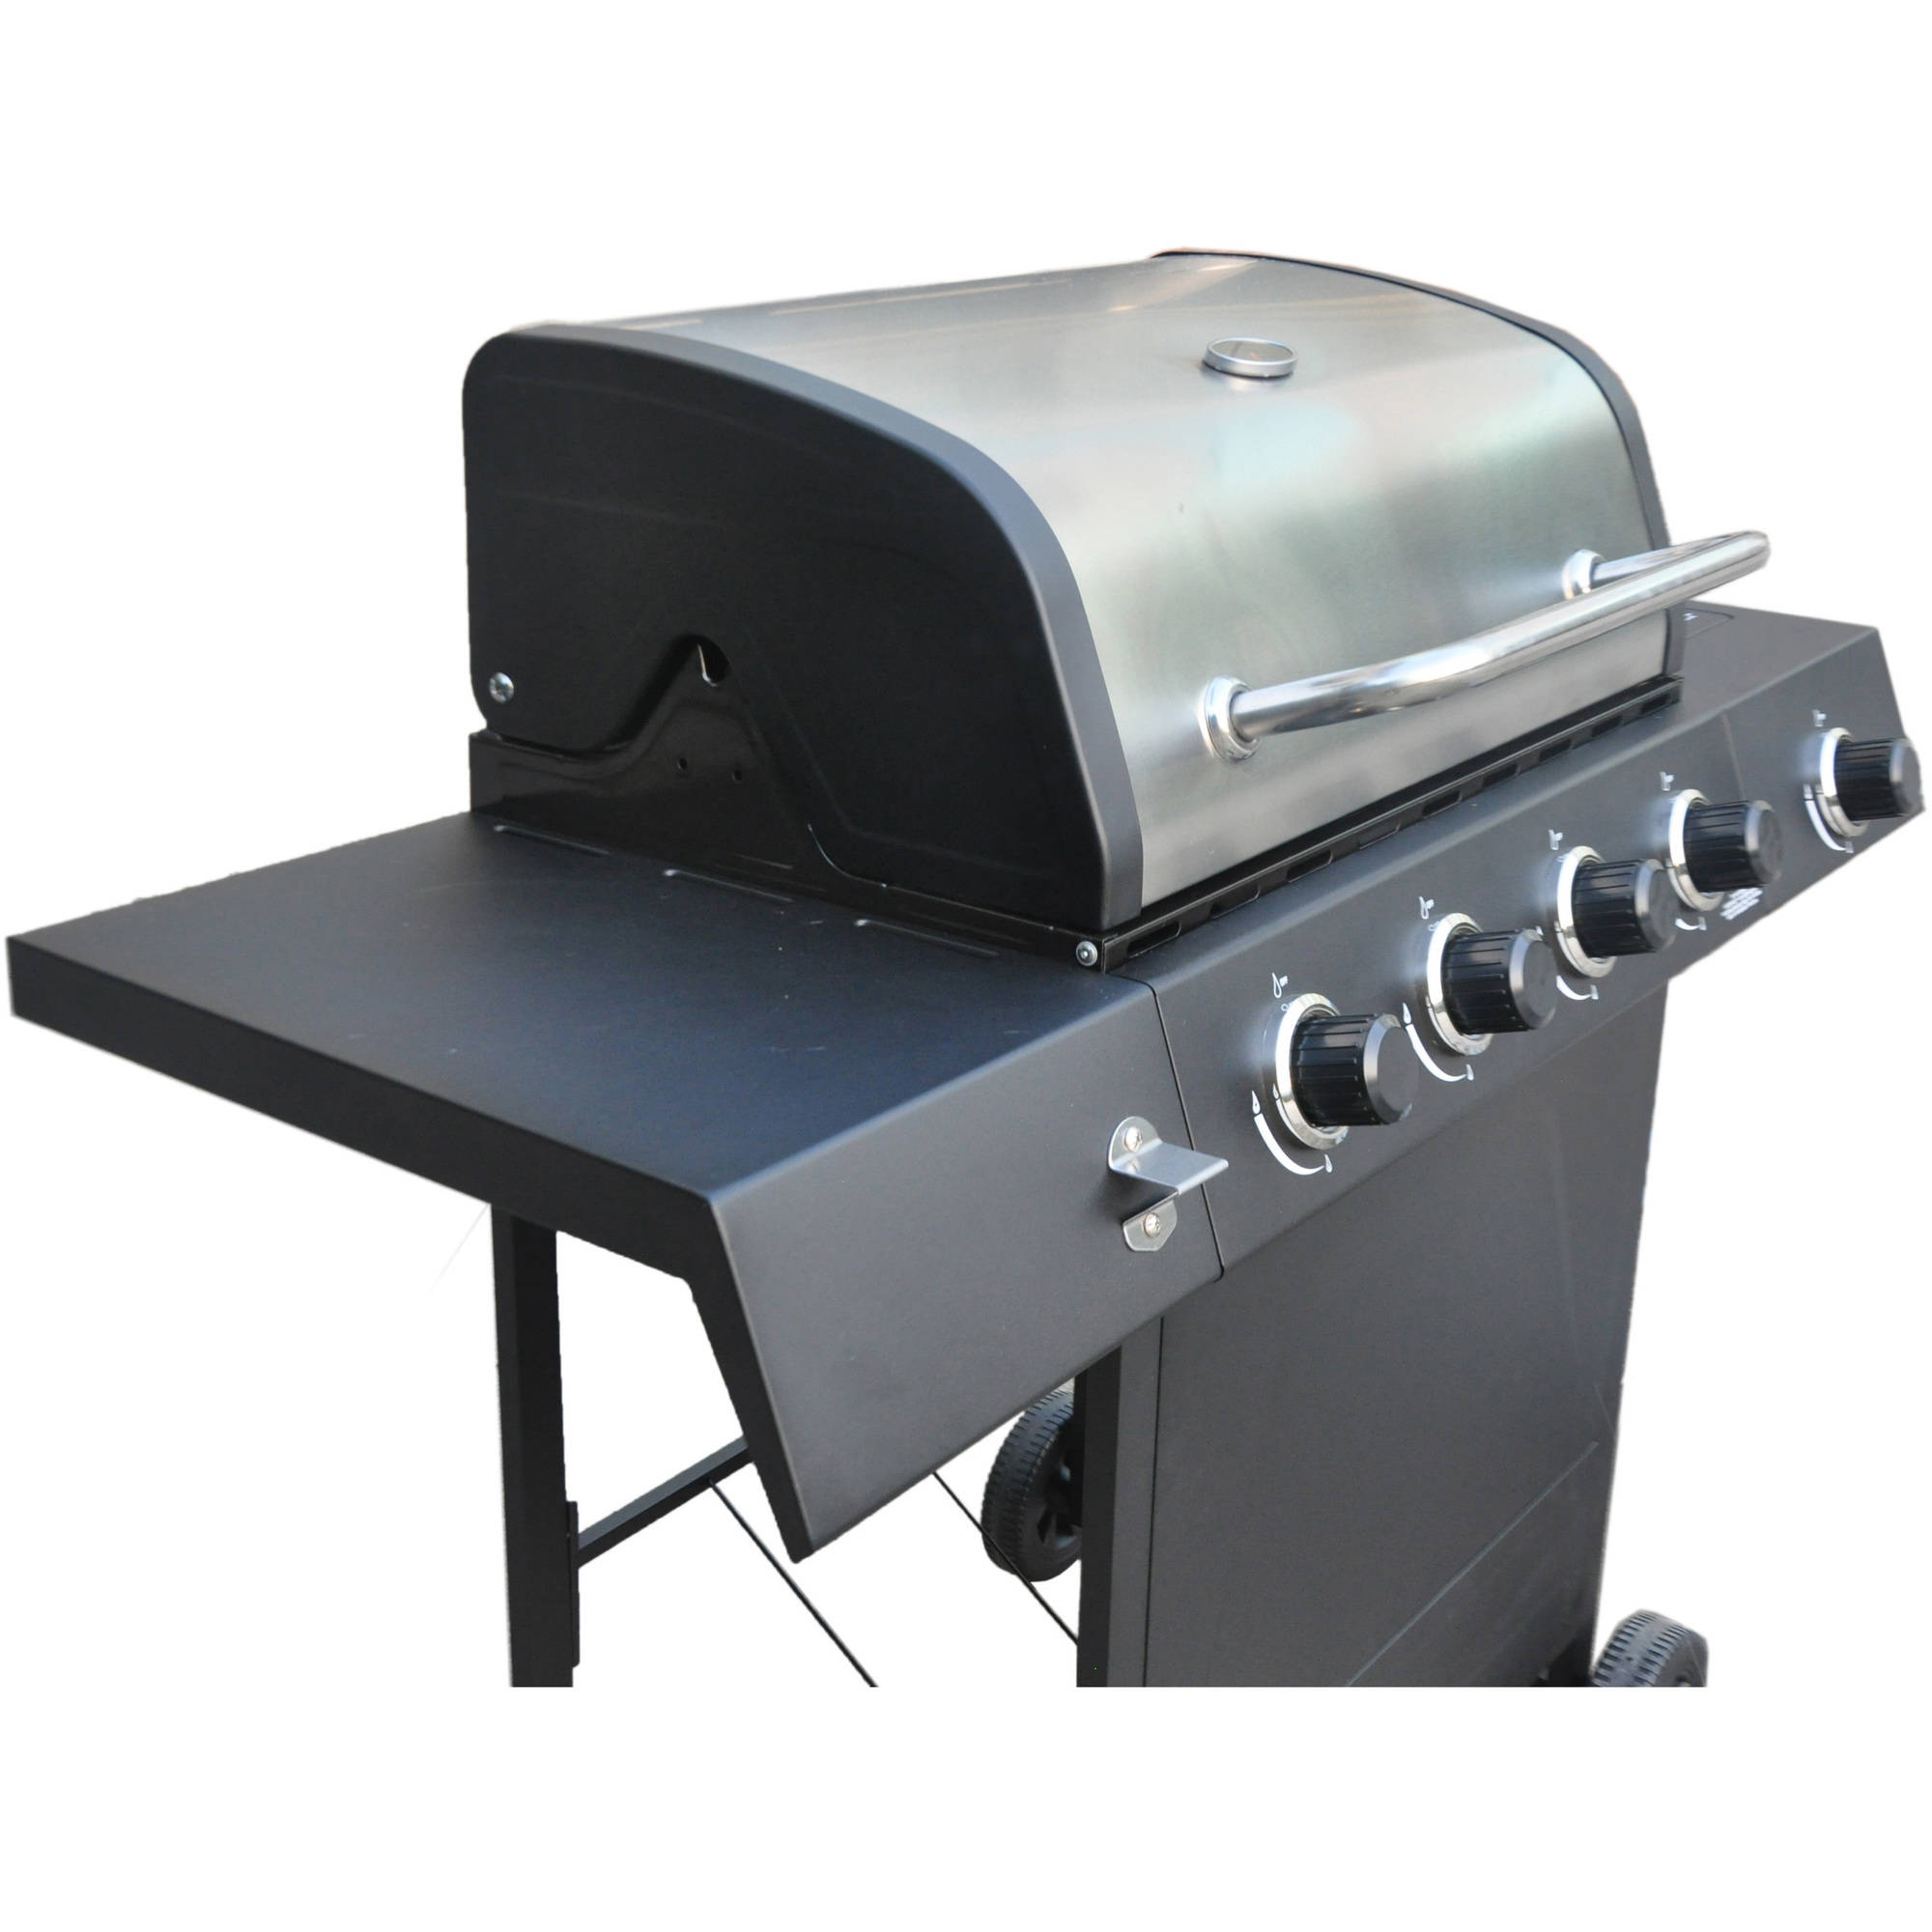 revoace 4 burner lp gas grill with side burner stainless steel